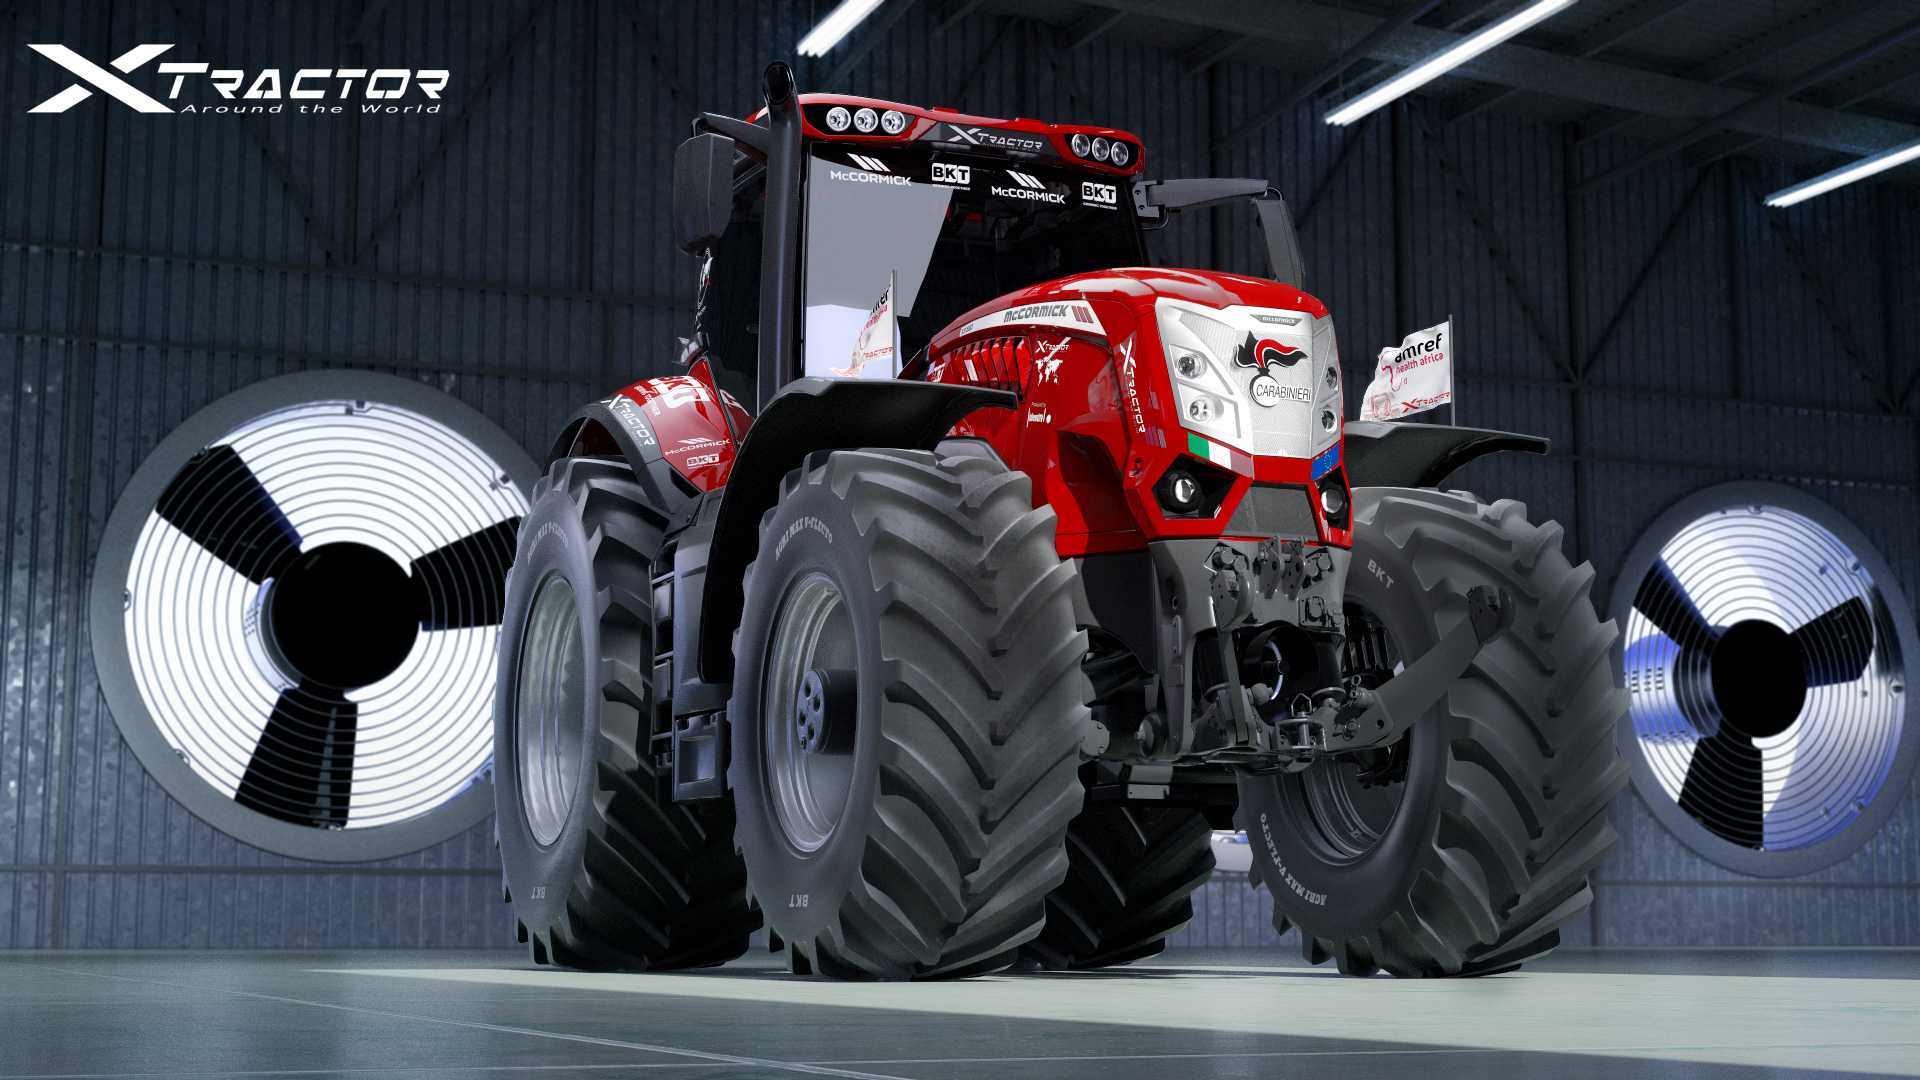 xtractor_red0312